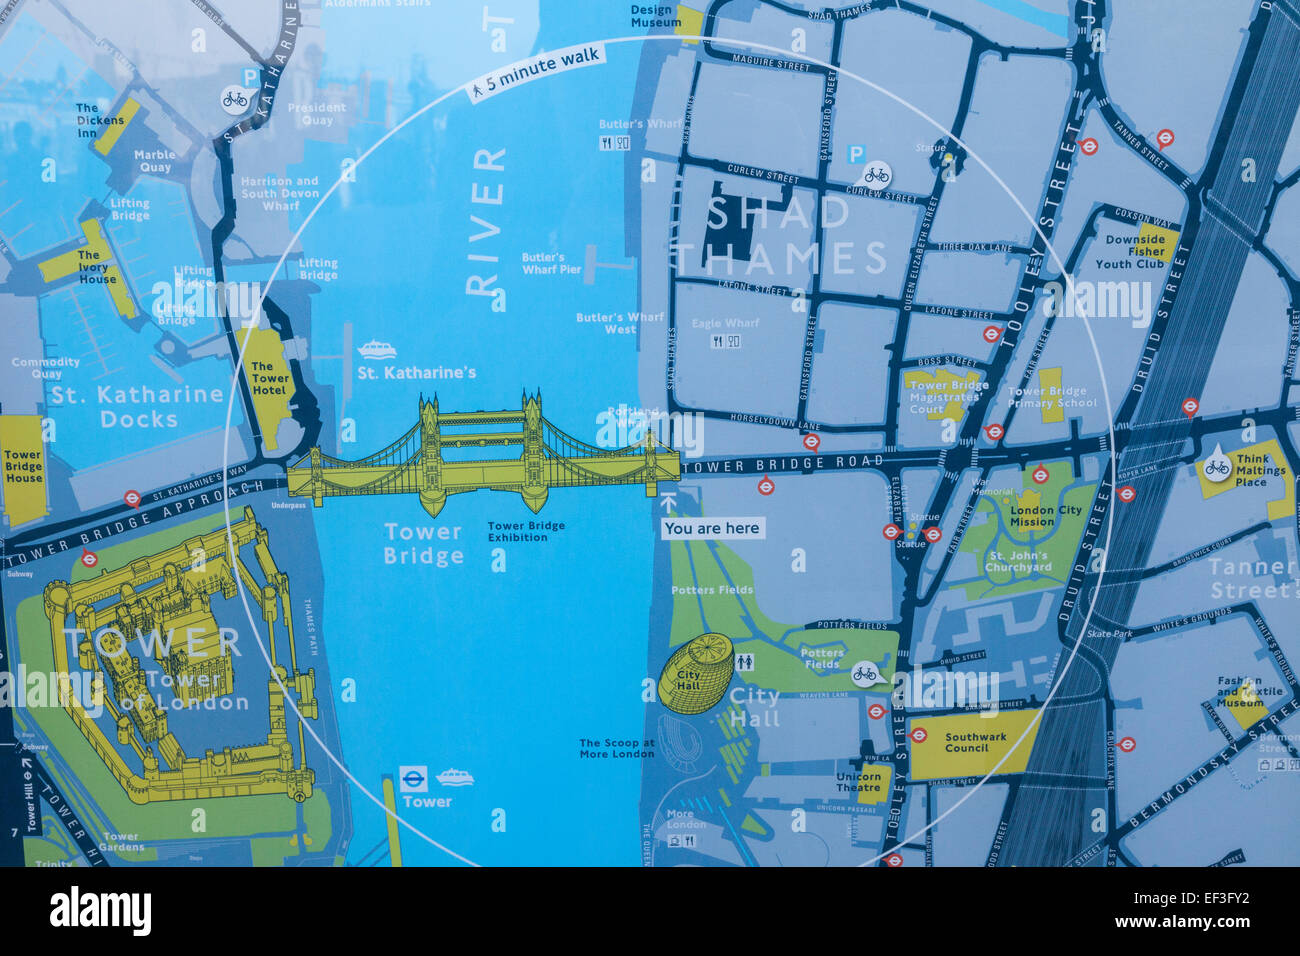 Map London Bridge.England London Street Map Of Tower Bridge And Surrounding Area